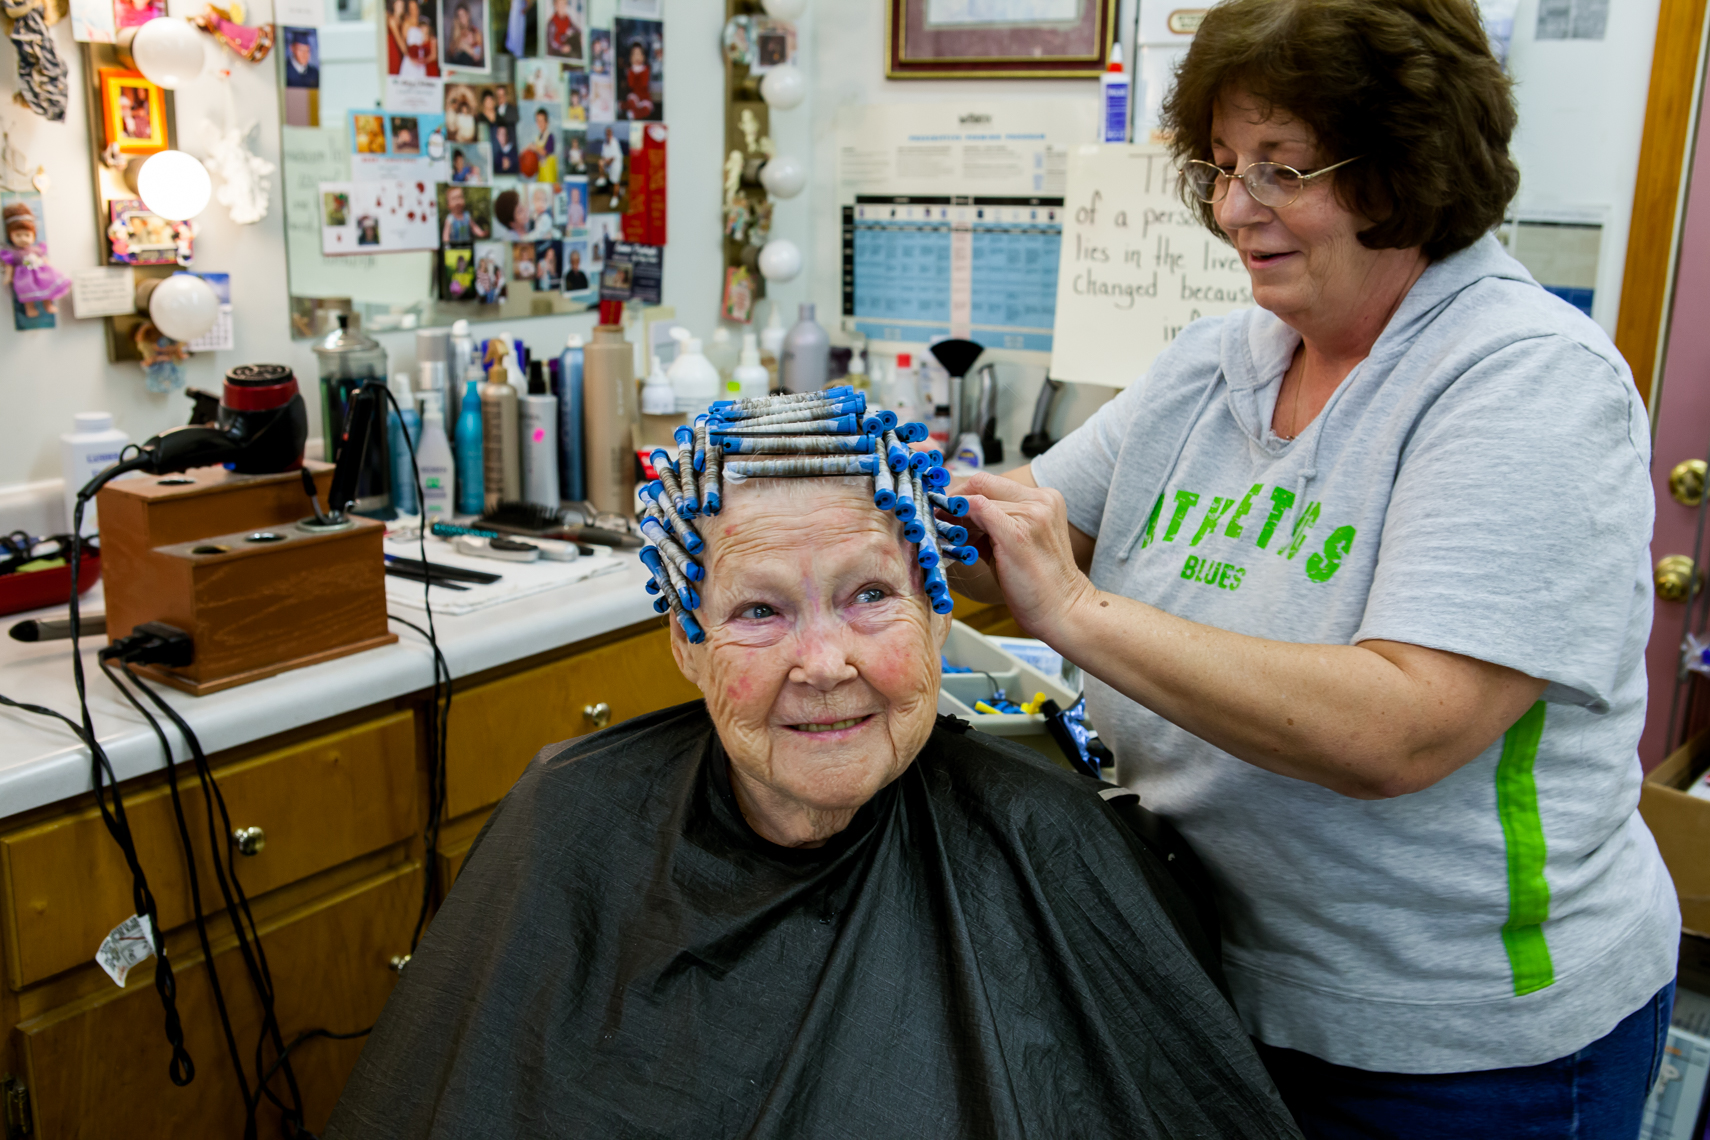 Elderly woman in a hair salon, work, hair stylist, golden, work, lifestyle, Nashville, editorial, advertising, photographer, photojournalist